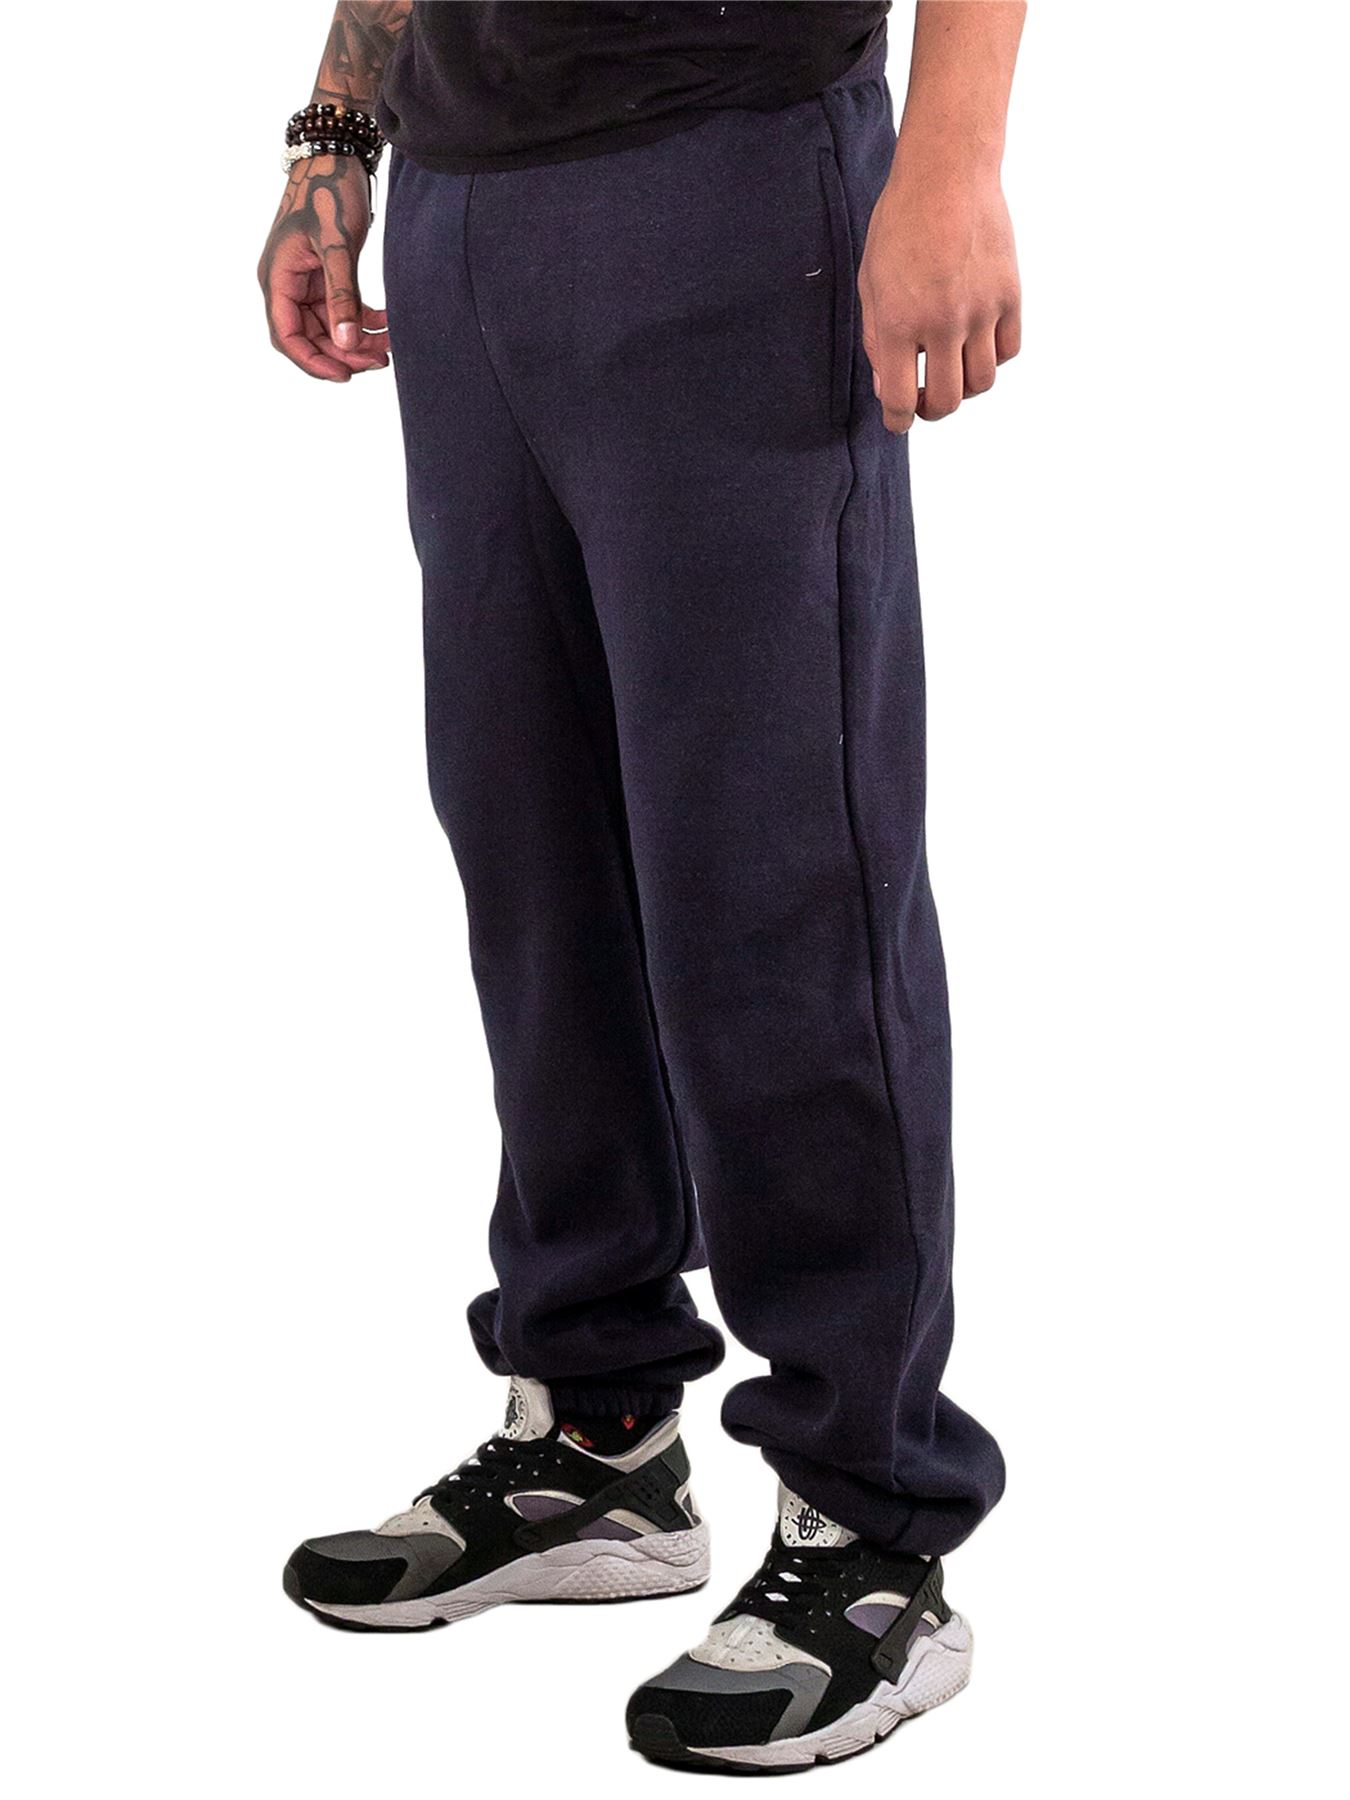 Mens-Fleece-Ribbed-Joggers-Tracksuit-Jogging-Bottom-Loose-Fit-Sweat-Pants-S-5XL thumbnail 10